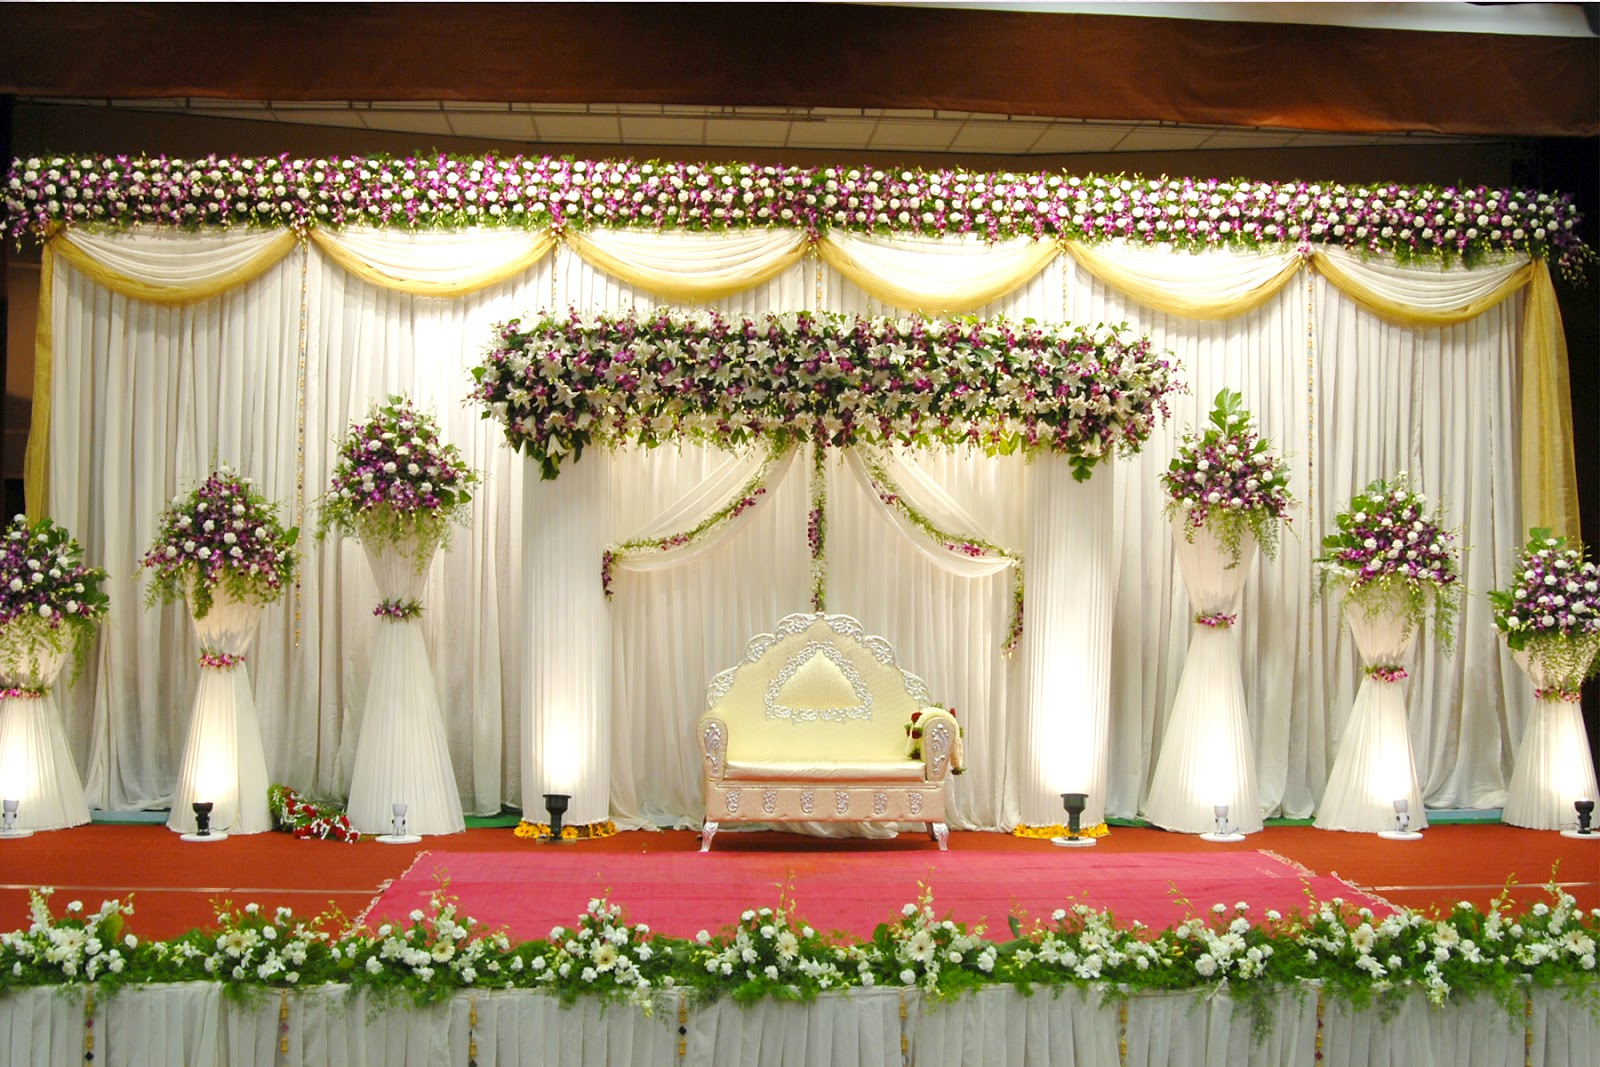 Best wedding stage decoration idea for indian weddings for Floral wedding decorations ideas